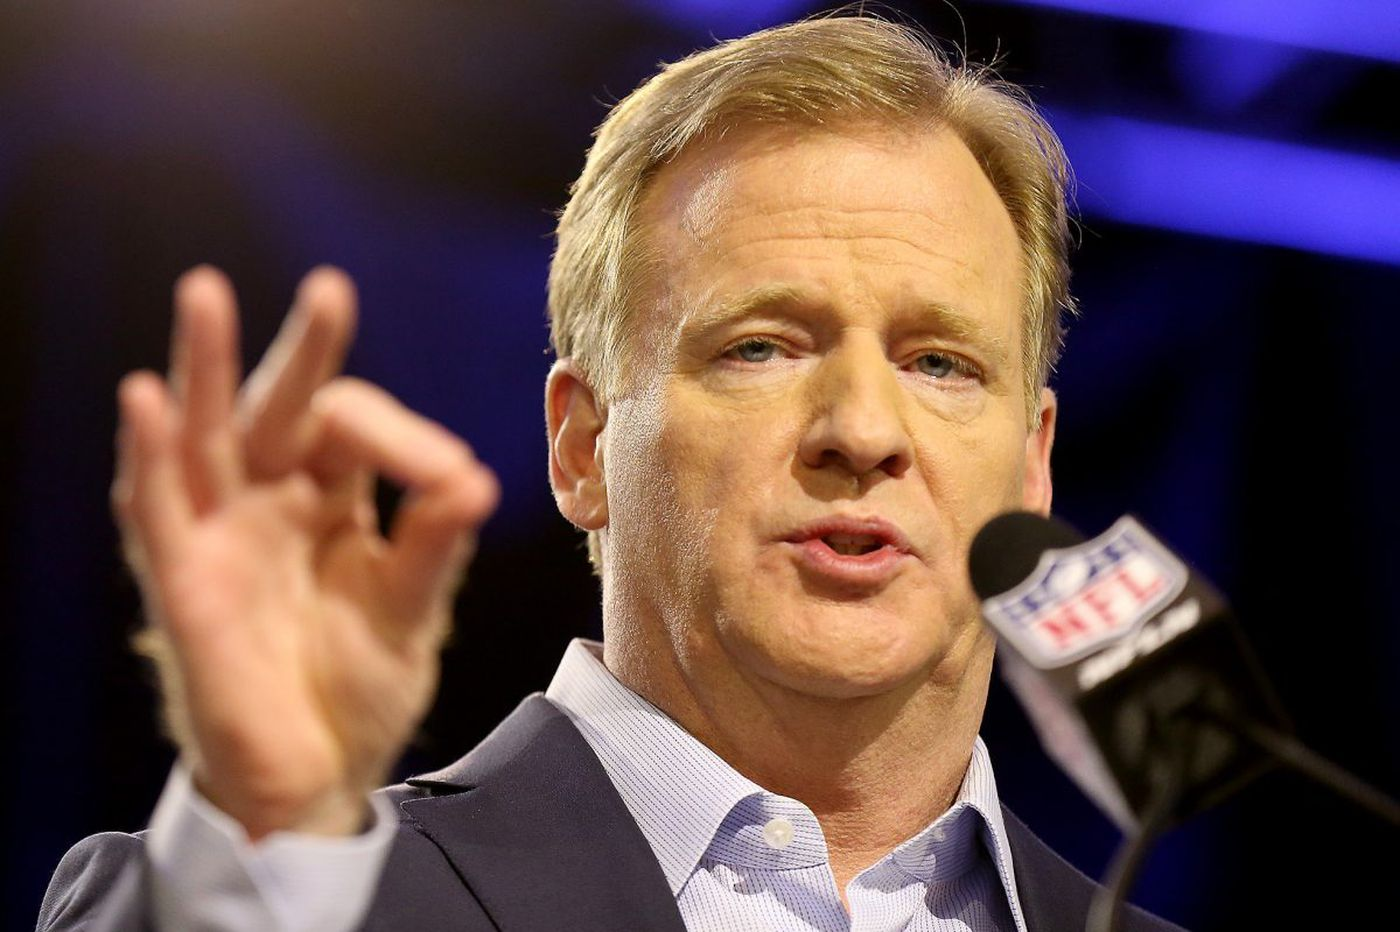 Roger Goodell puts happy spin on difficult year for NFL | Bob Brookover